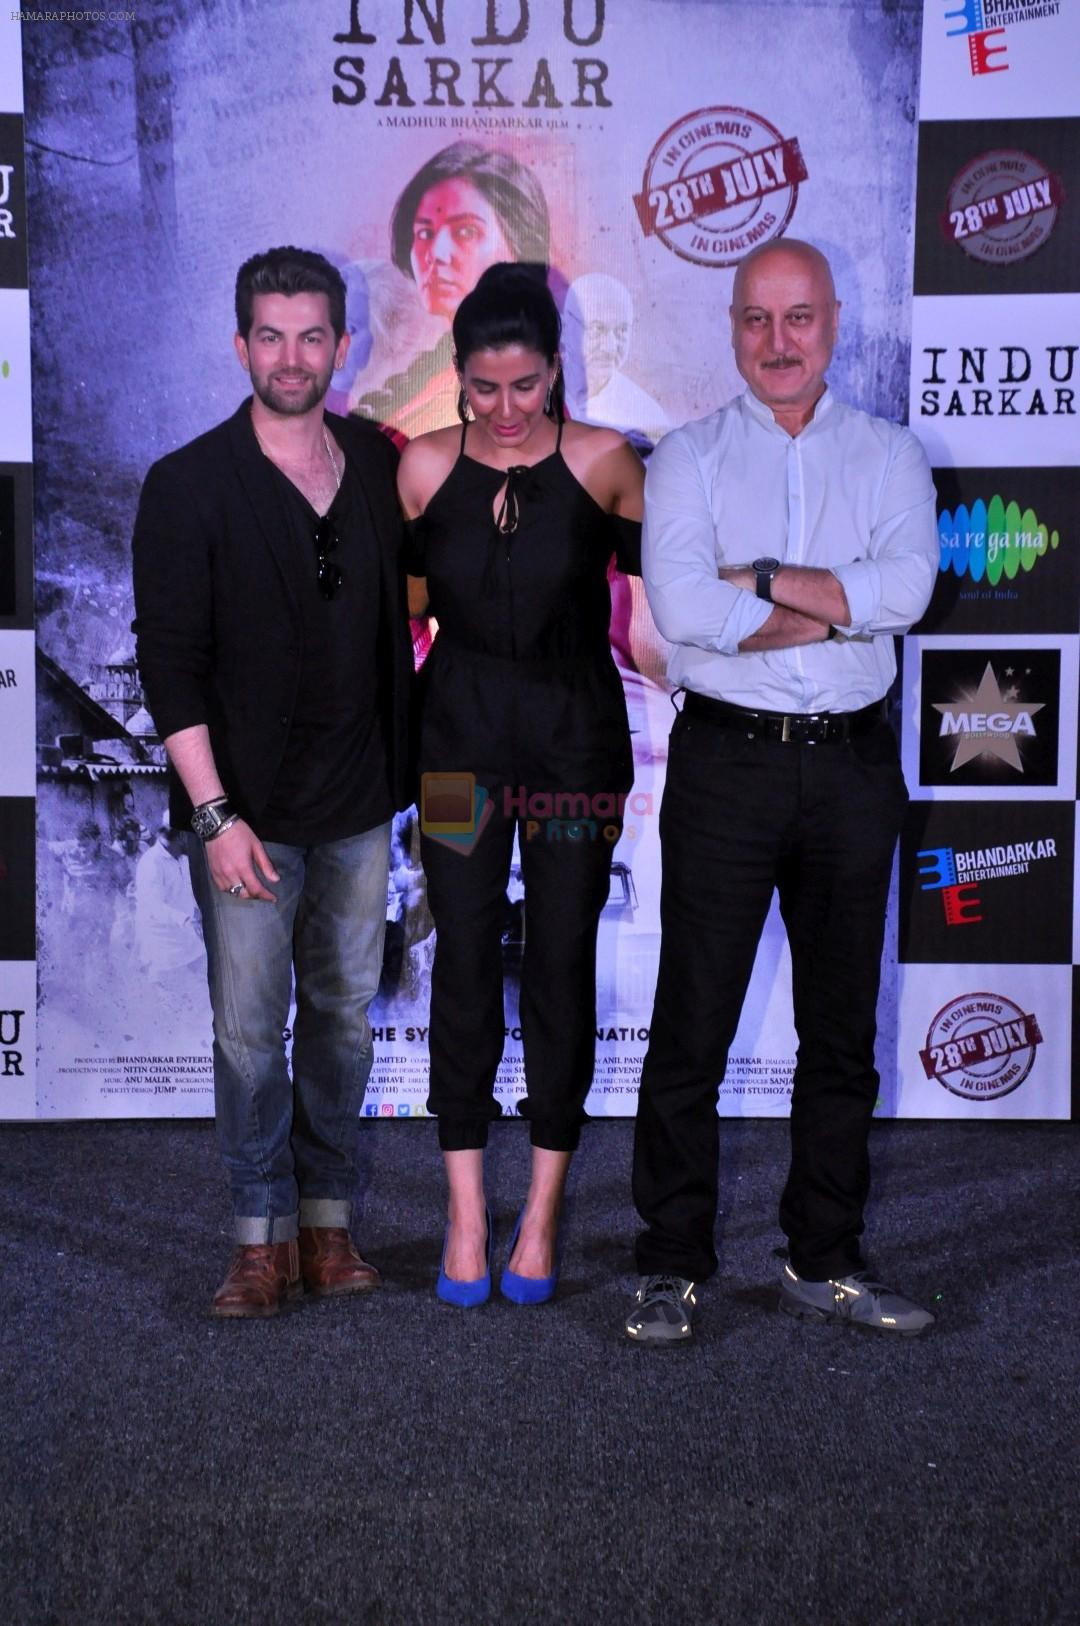 Kirti Kulhari, Neil Nitin Mukesh, Anupam Kher at the Trailer Launch Of Film Indu Sarkar in Mumbai on 16th June 2017